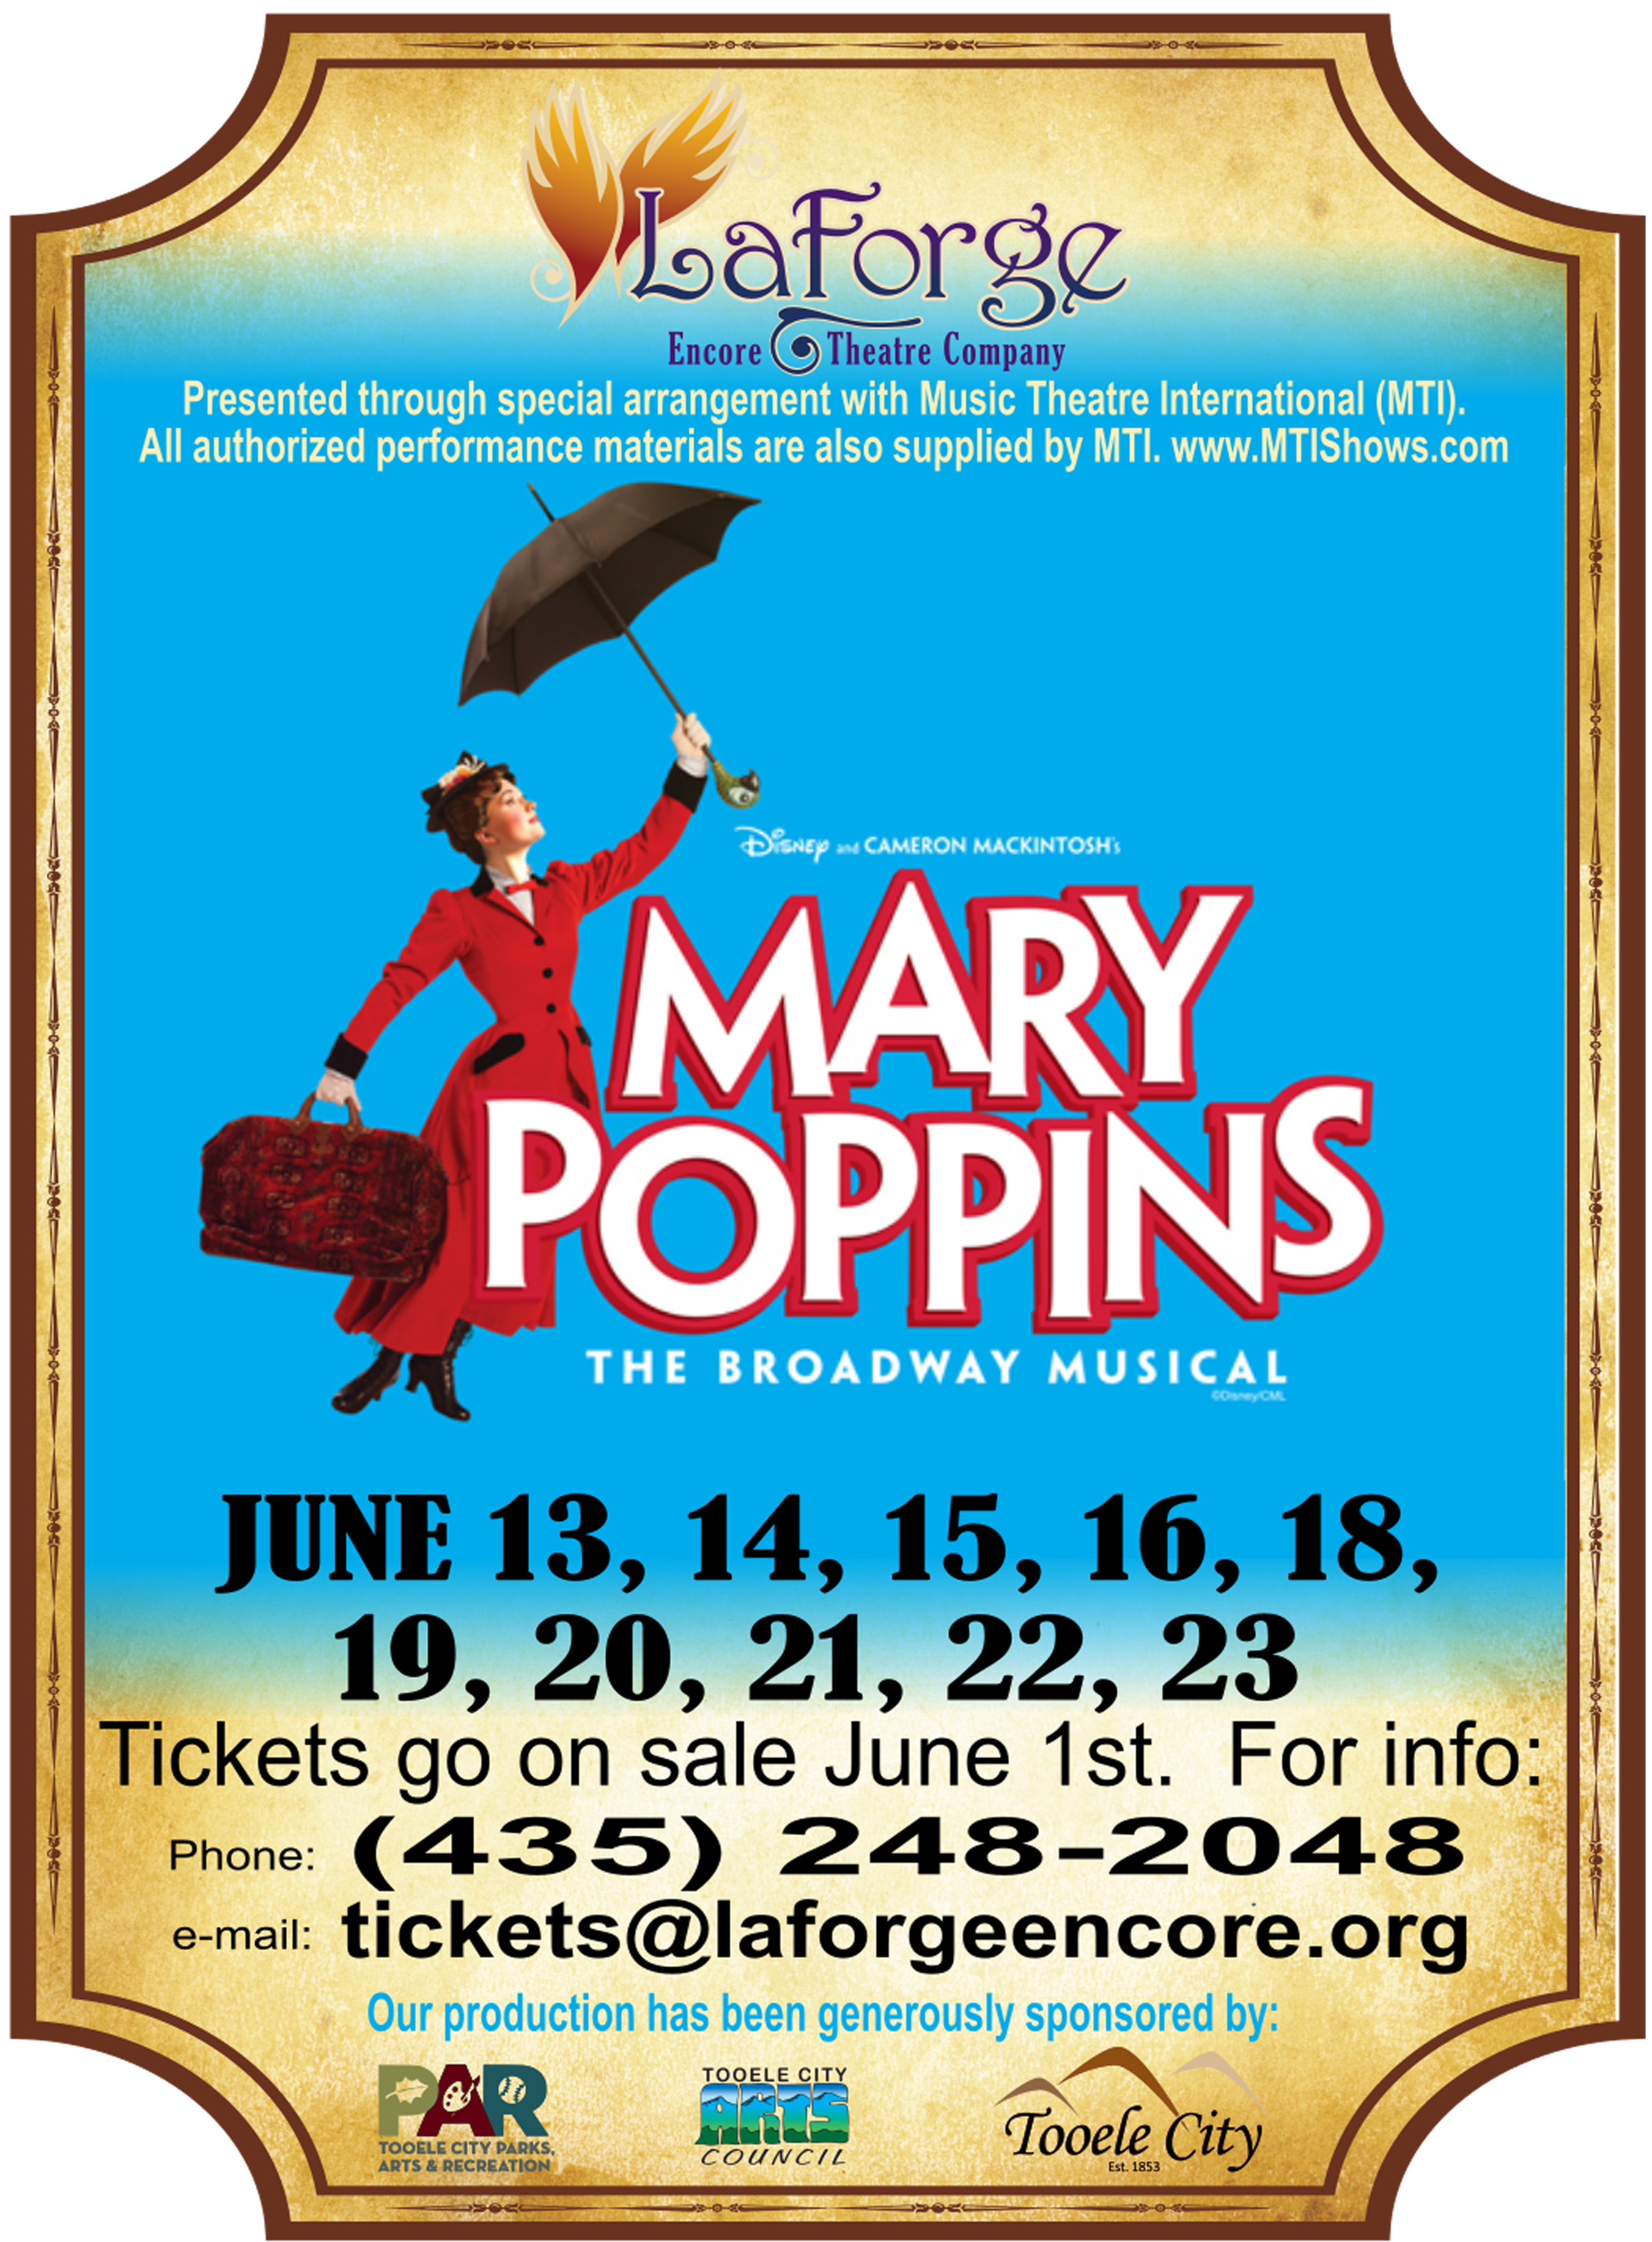 LaForge Encore Theatre presents 'Mary Poppins' | Tooele City